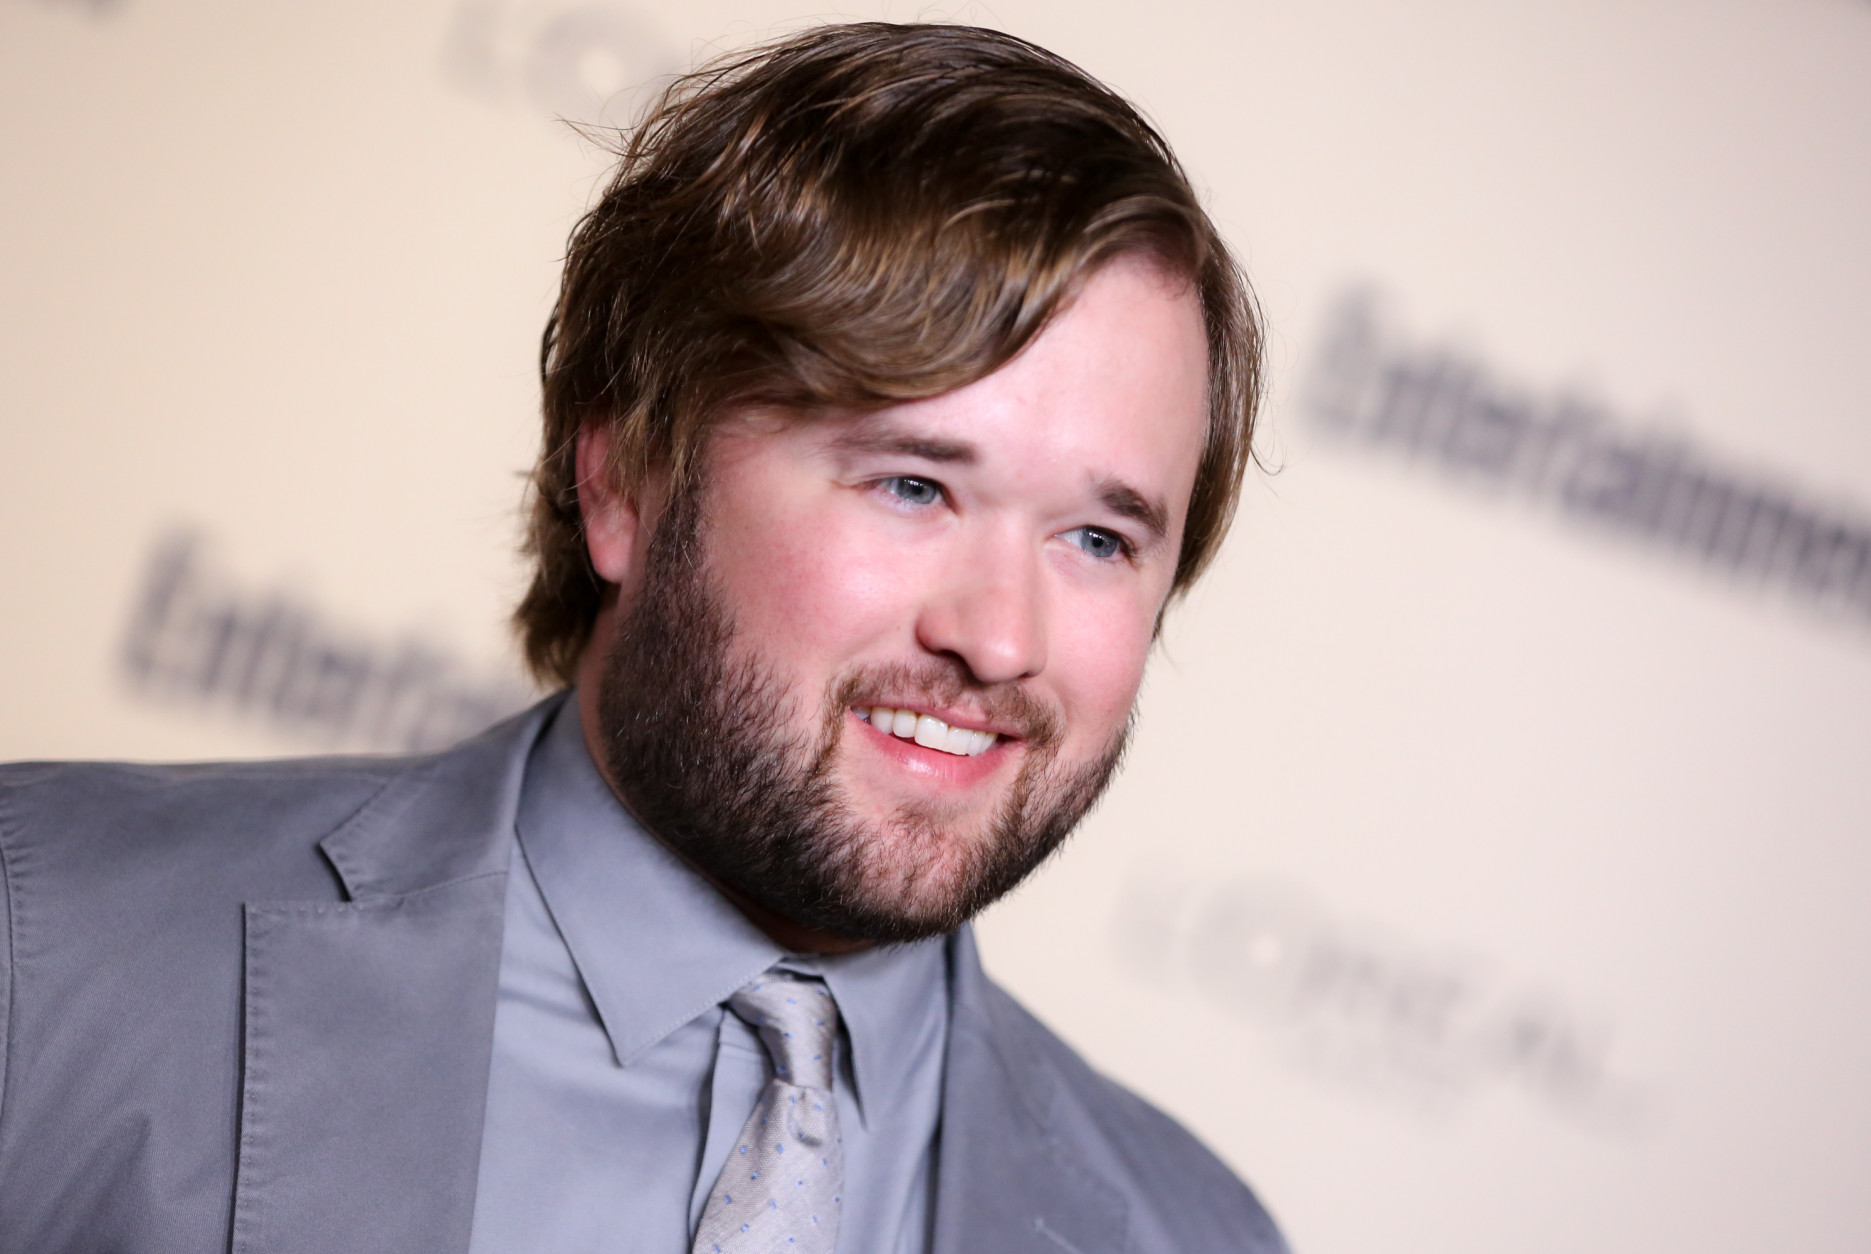 Haley Joel Osment arrives at the 2015 Entertainment Weekly Pre-Emmy Party at Fig & Olive on Friday, Sept. 18, 2015, in Los Angeles. (Photo by Rich Fury/Invision/AP)